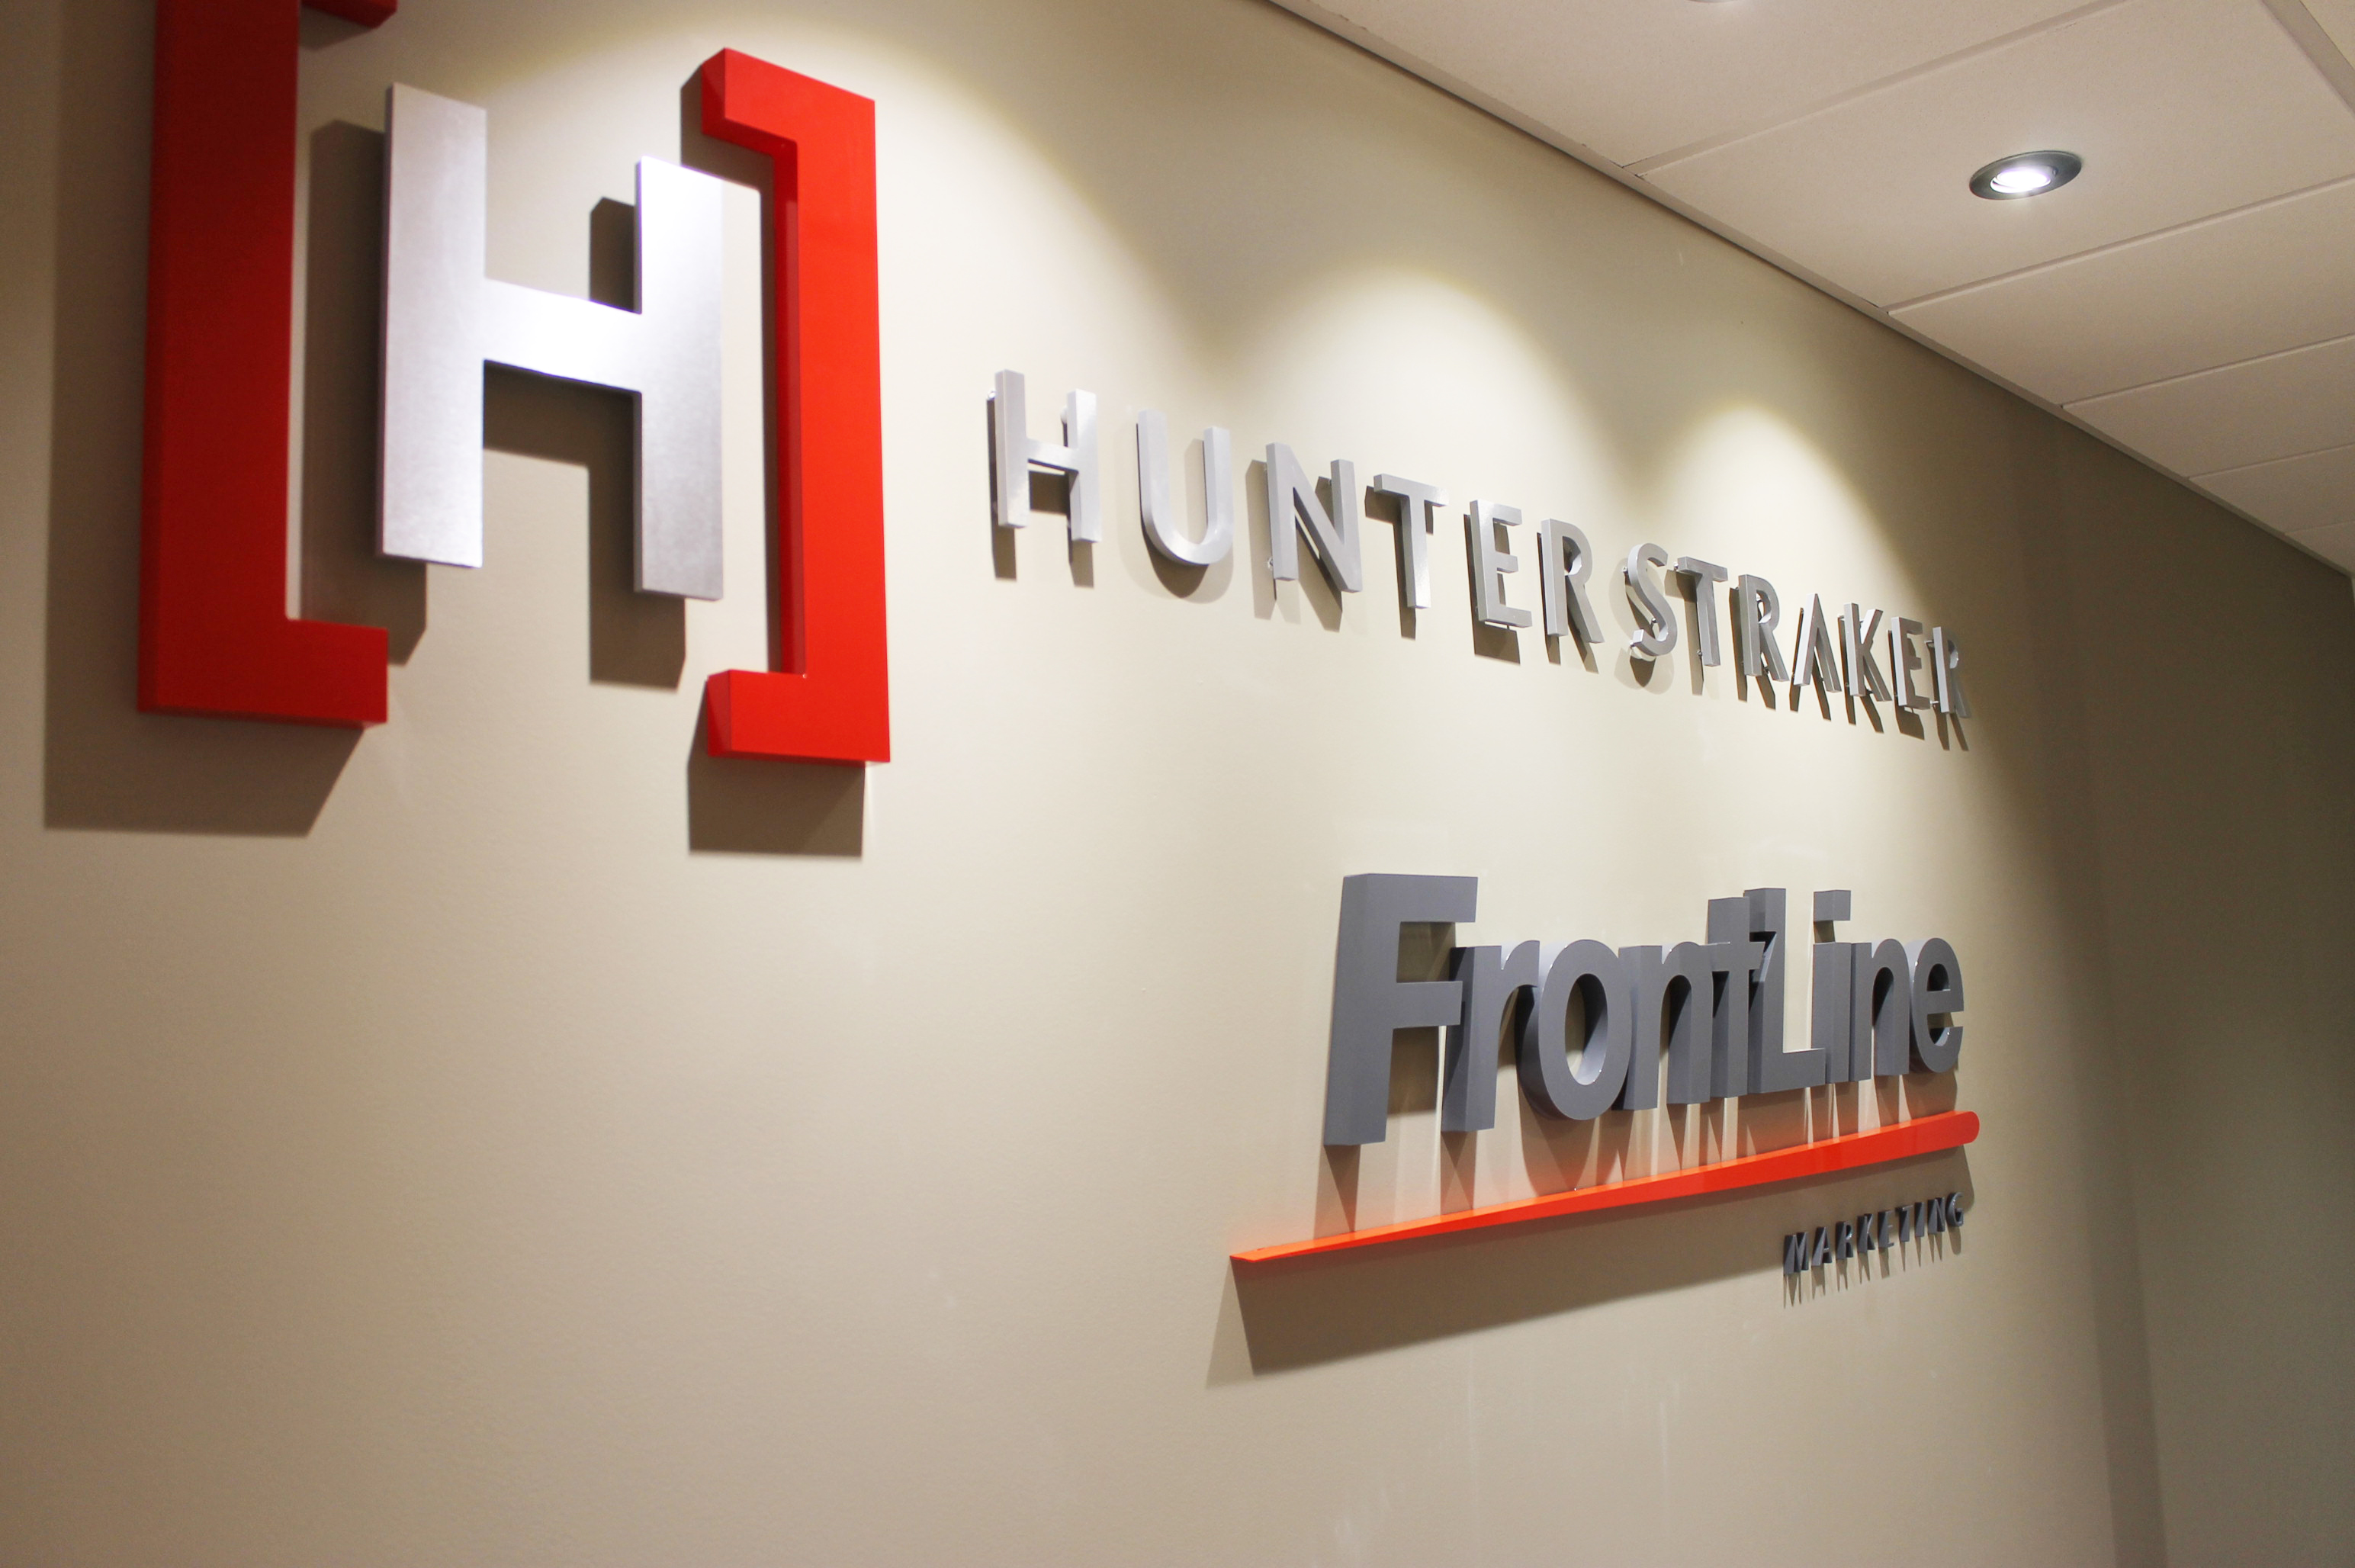 Hunter straker dimenional letter